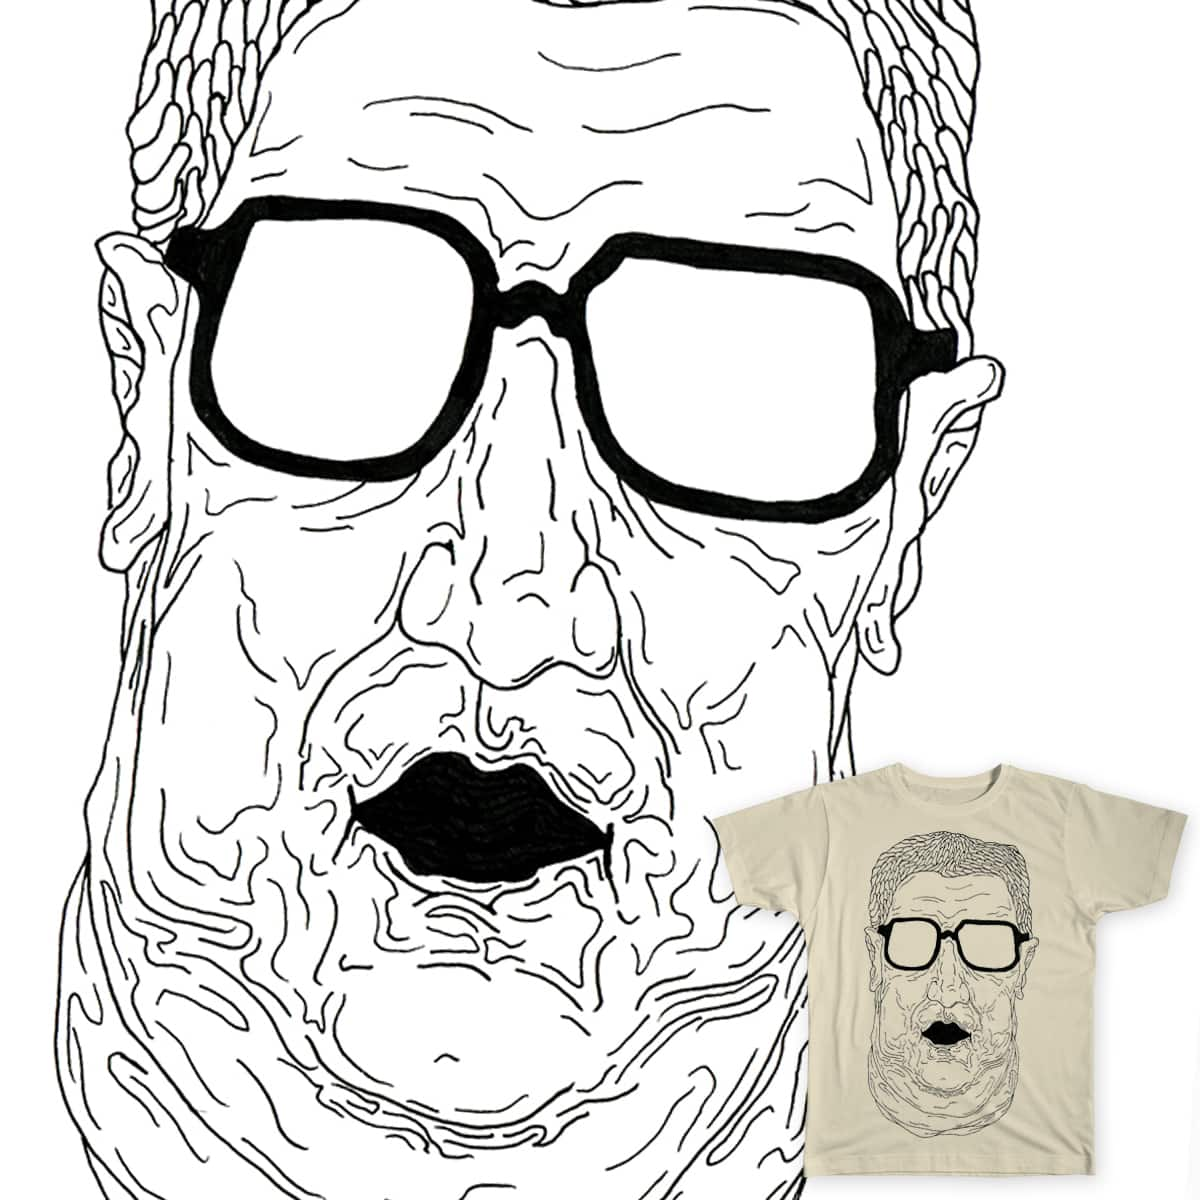 Guy with glasses by AdiBoro on Threadless